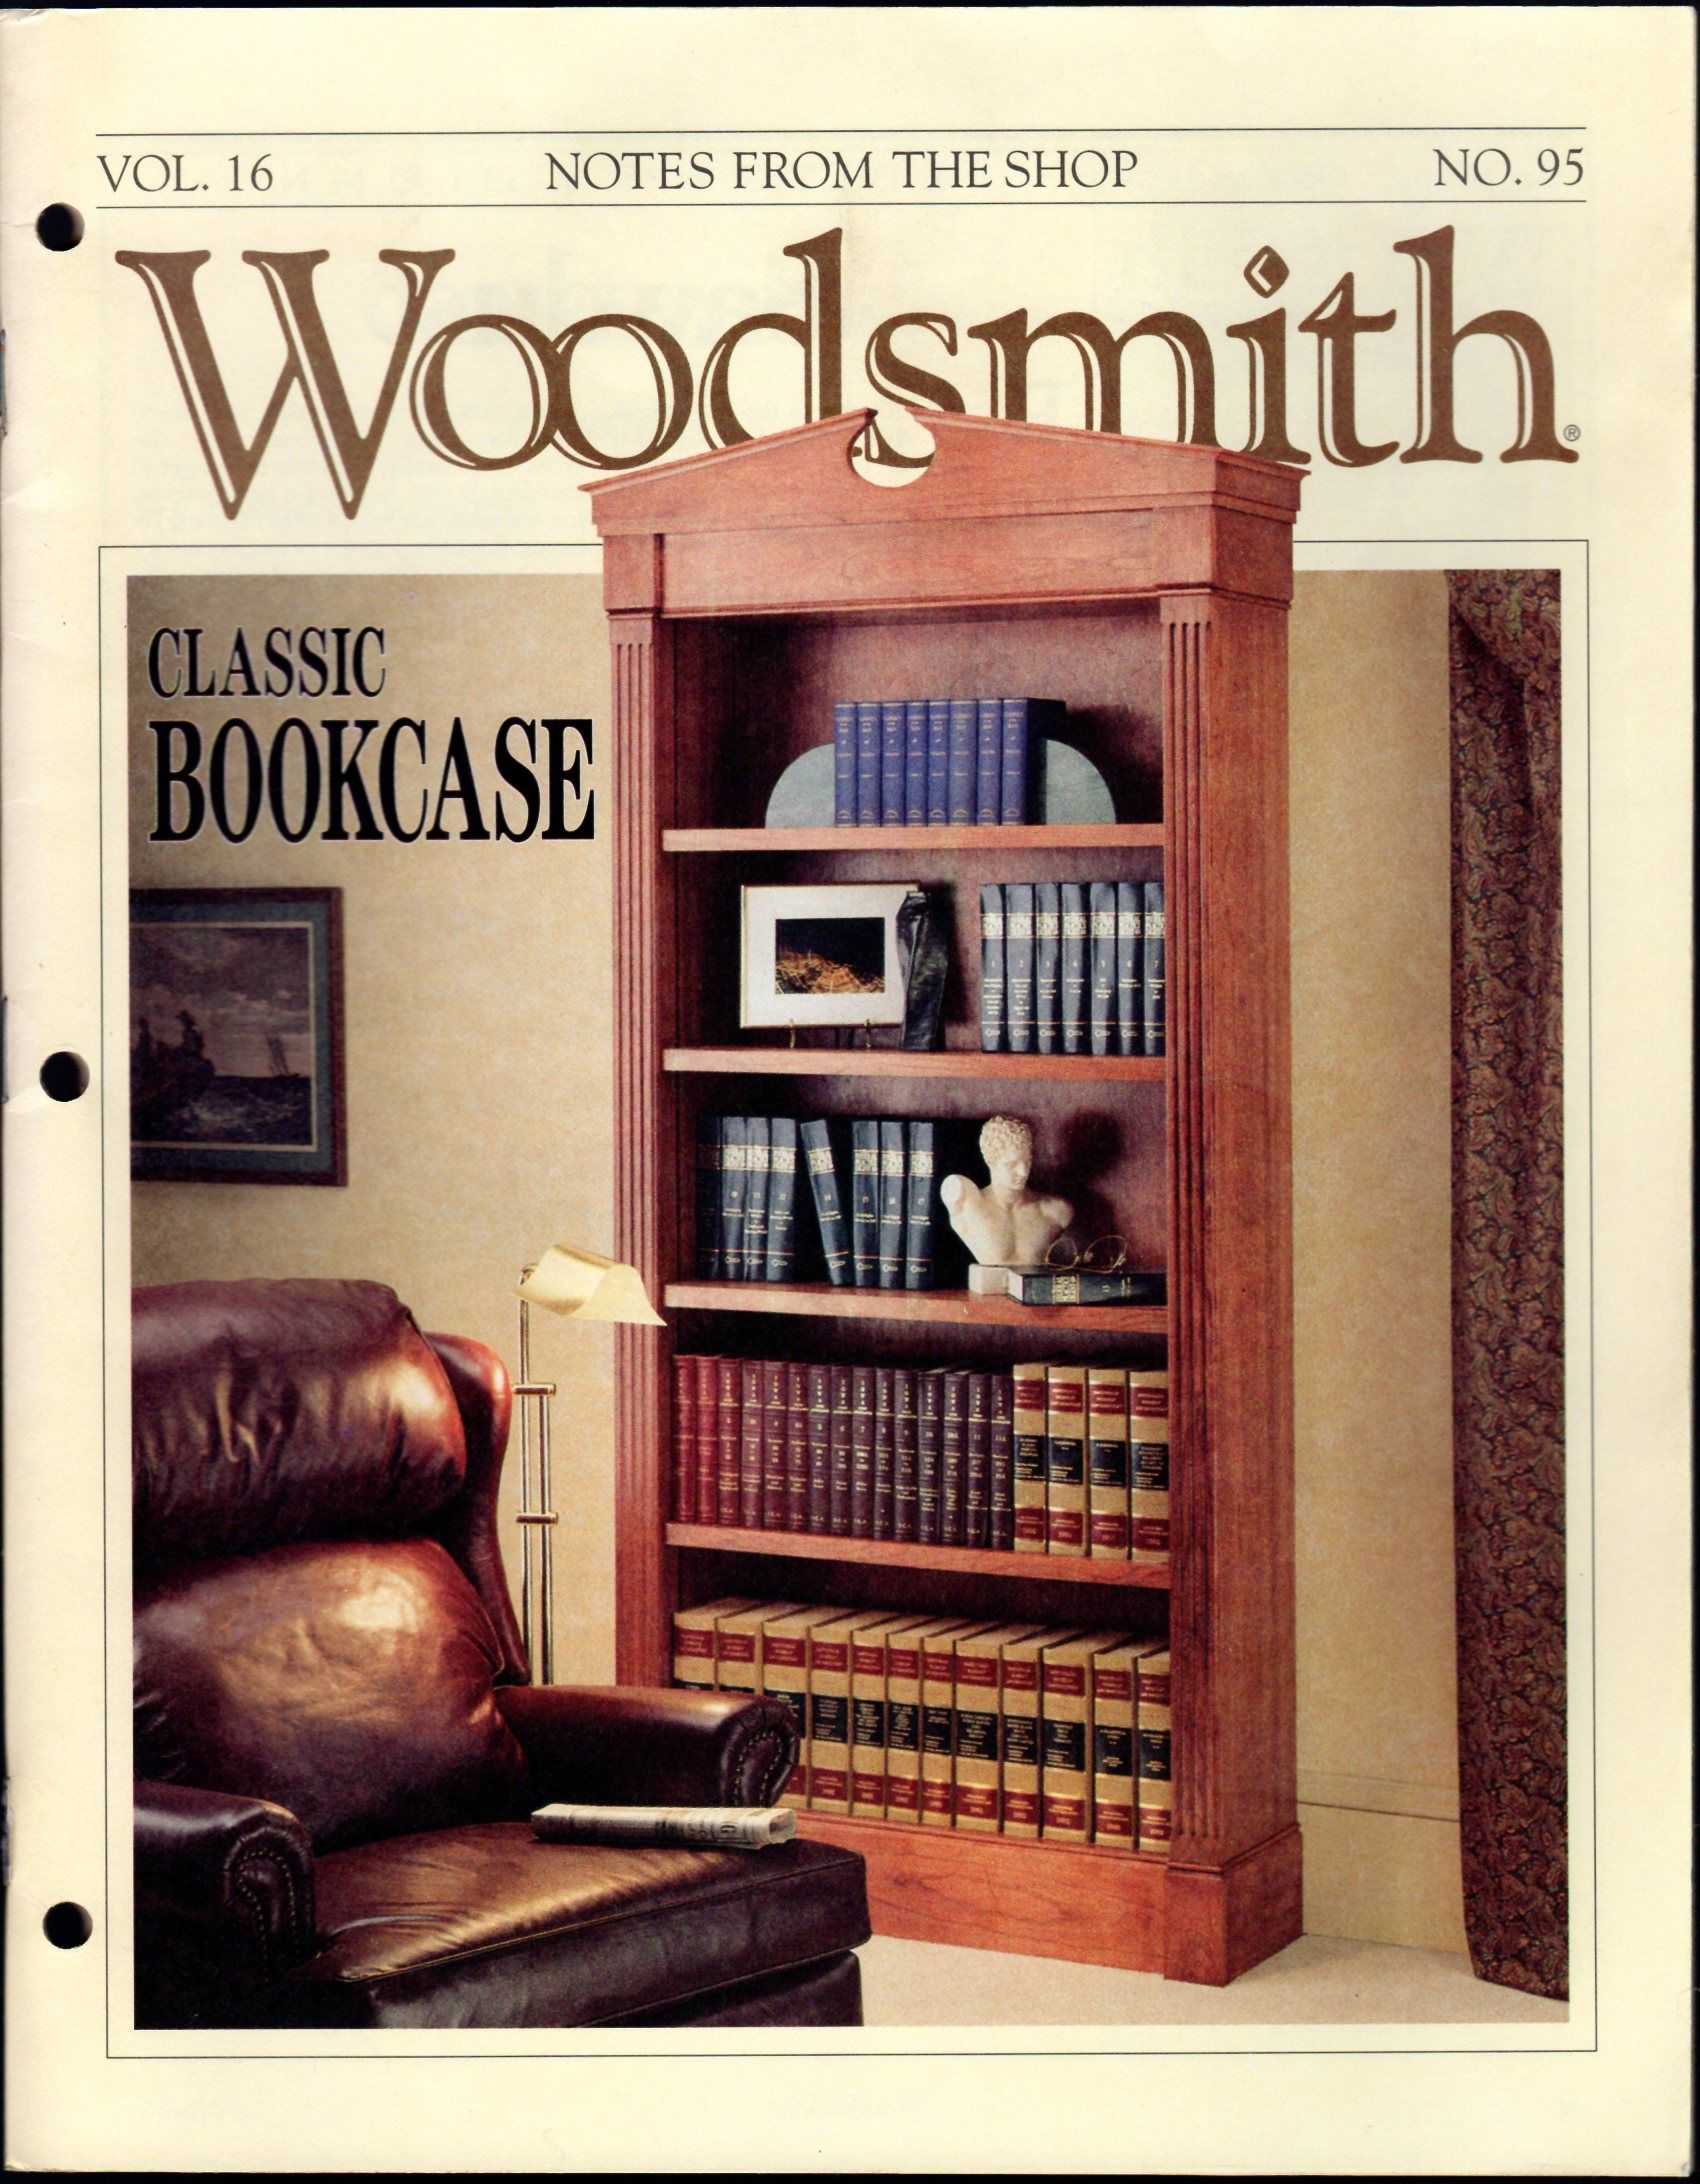 Woodsmith Notes From The Shop Vol 16 95 Octoberl